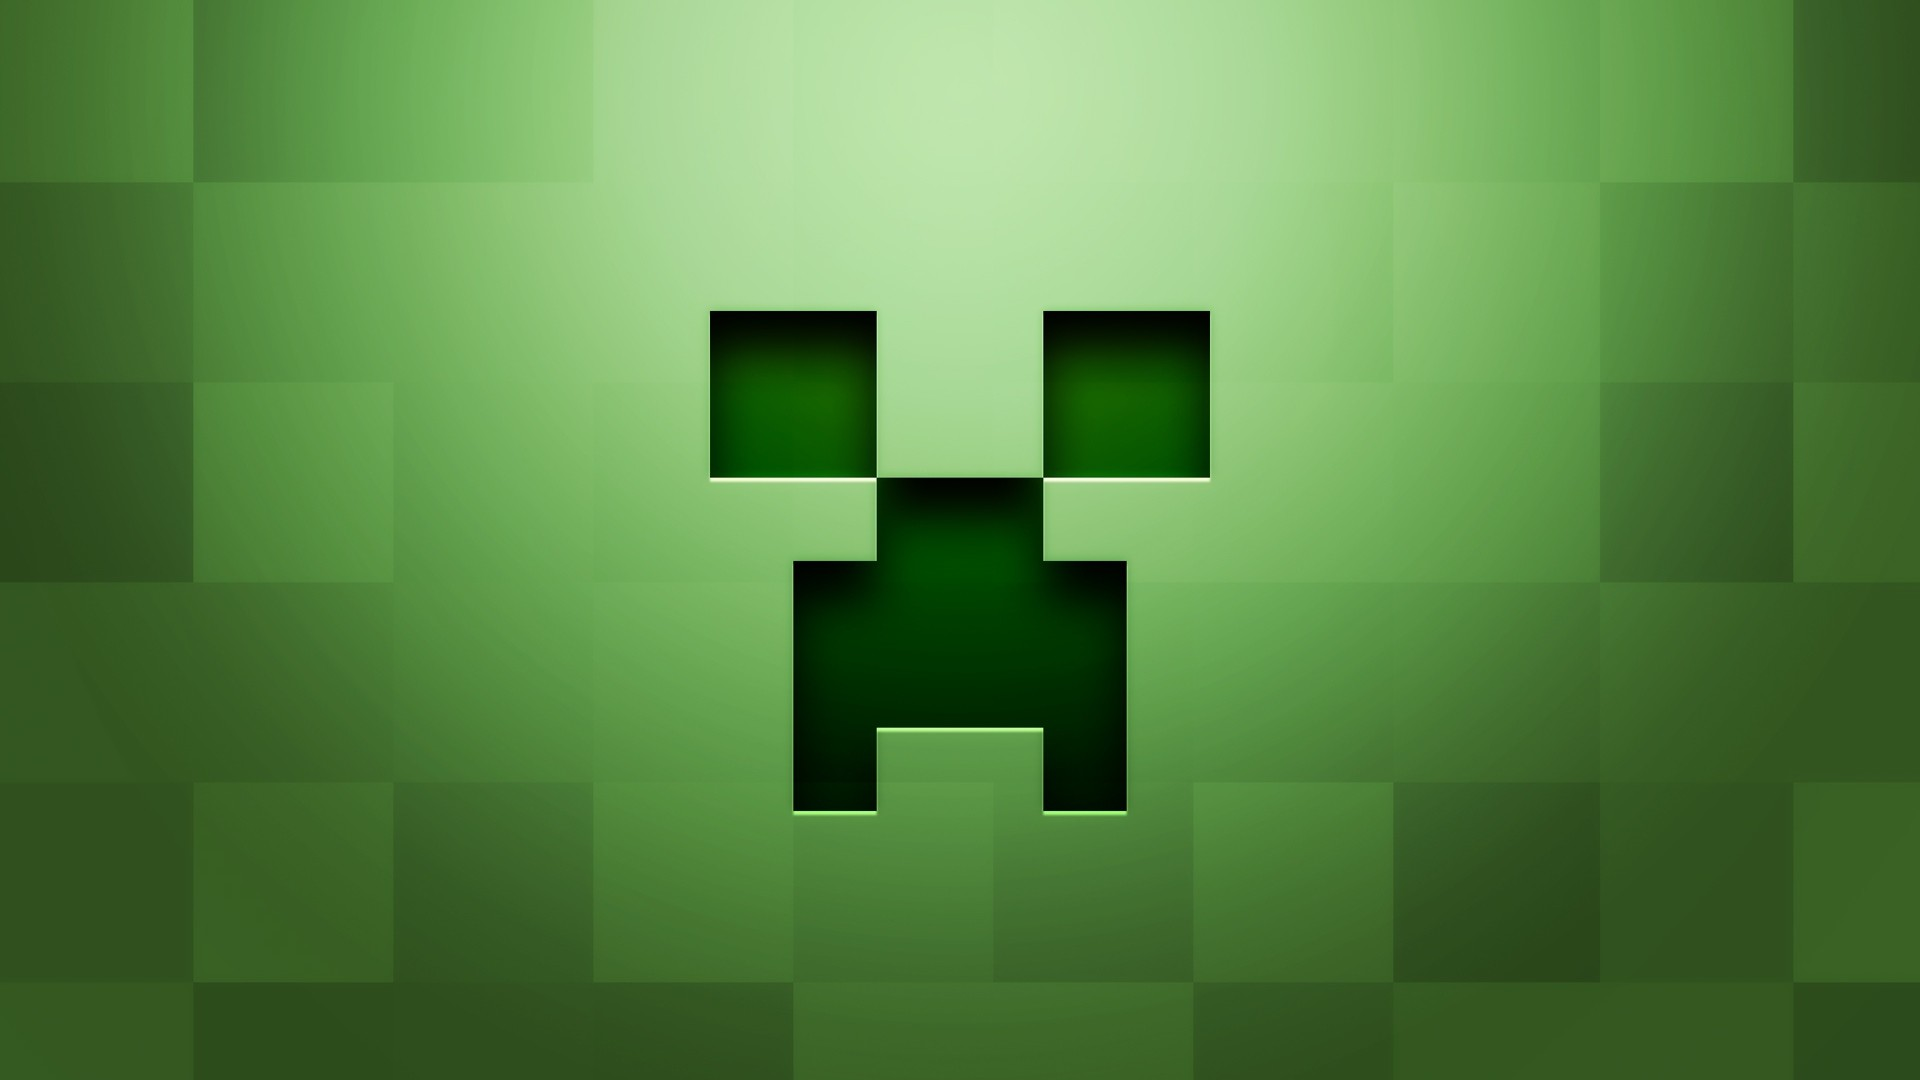 1920x1080 minecraft background graphics green hd background wallpapers free amazing  cool tablet smart phone 4k 1920×1080 Wallpaper HD